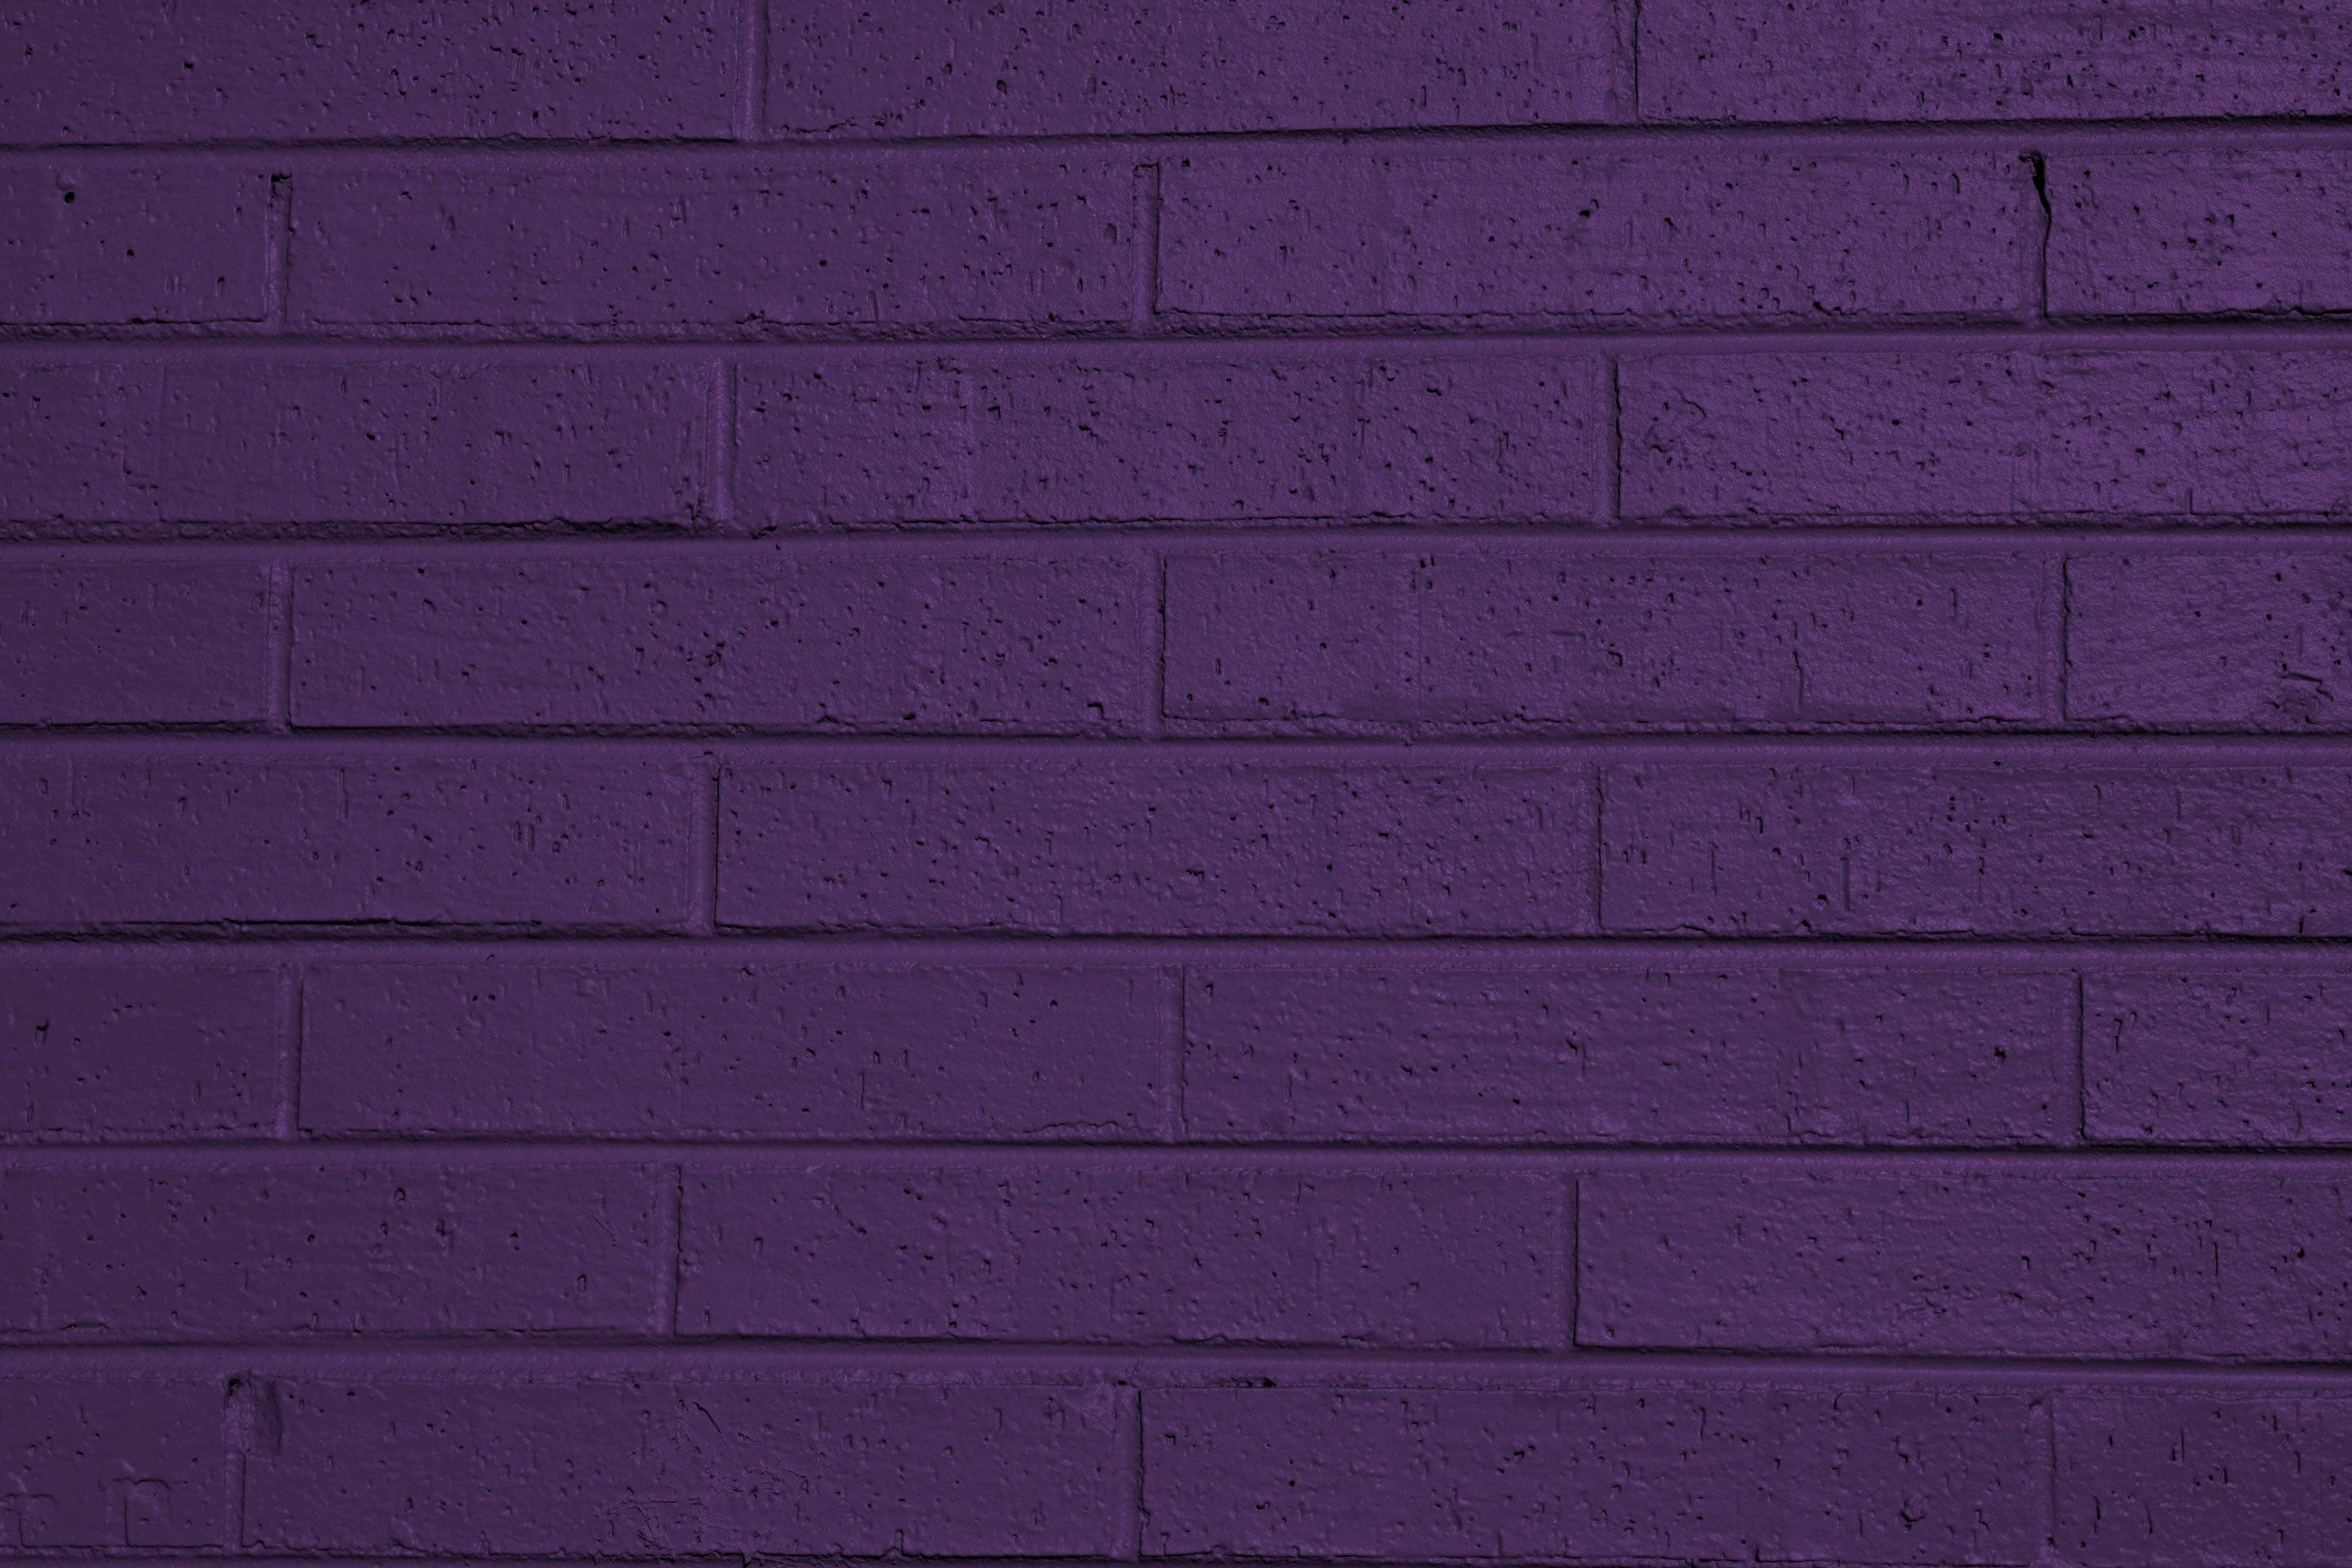 Dark Purple Wallpaper 9982 Wallpaper - Res: 3000x2000 - dark ...